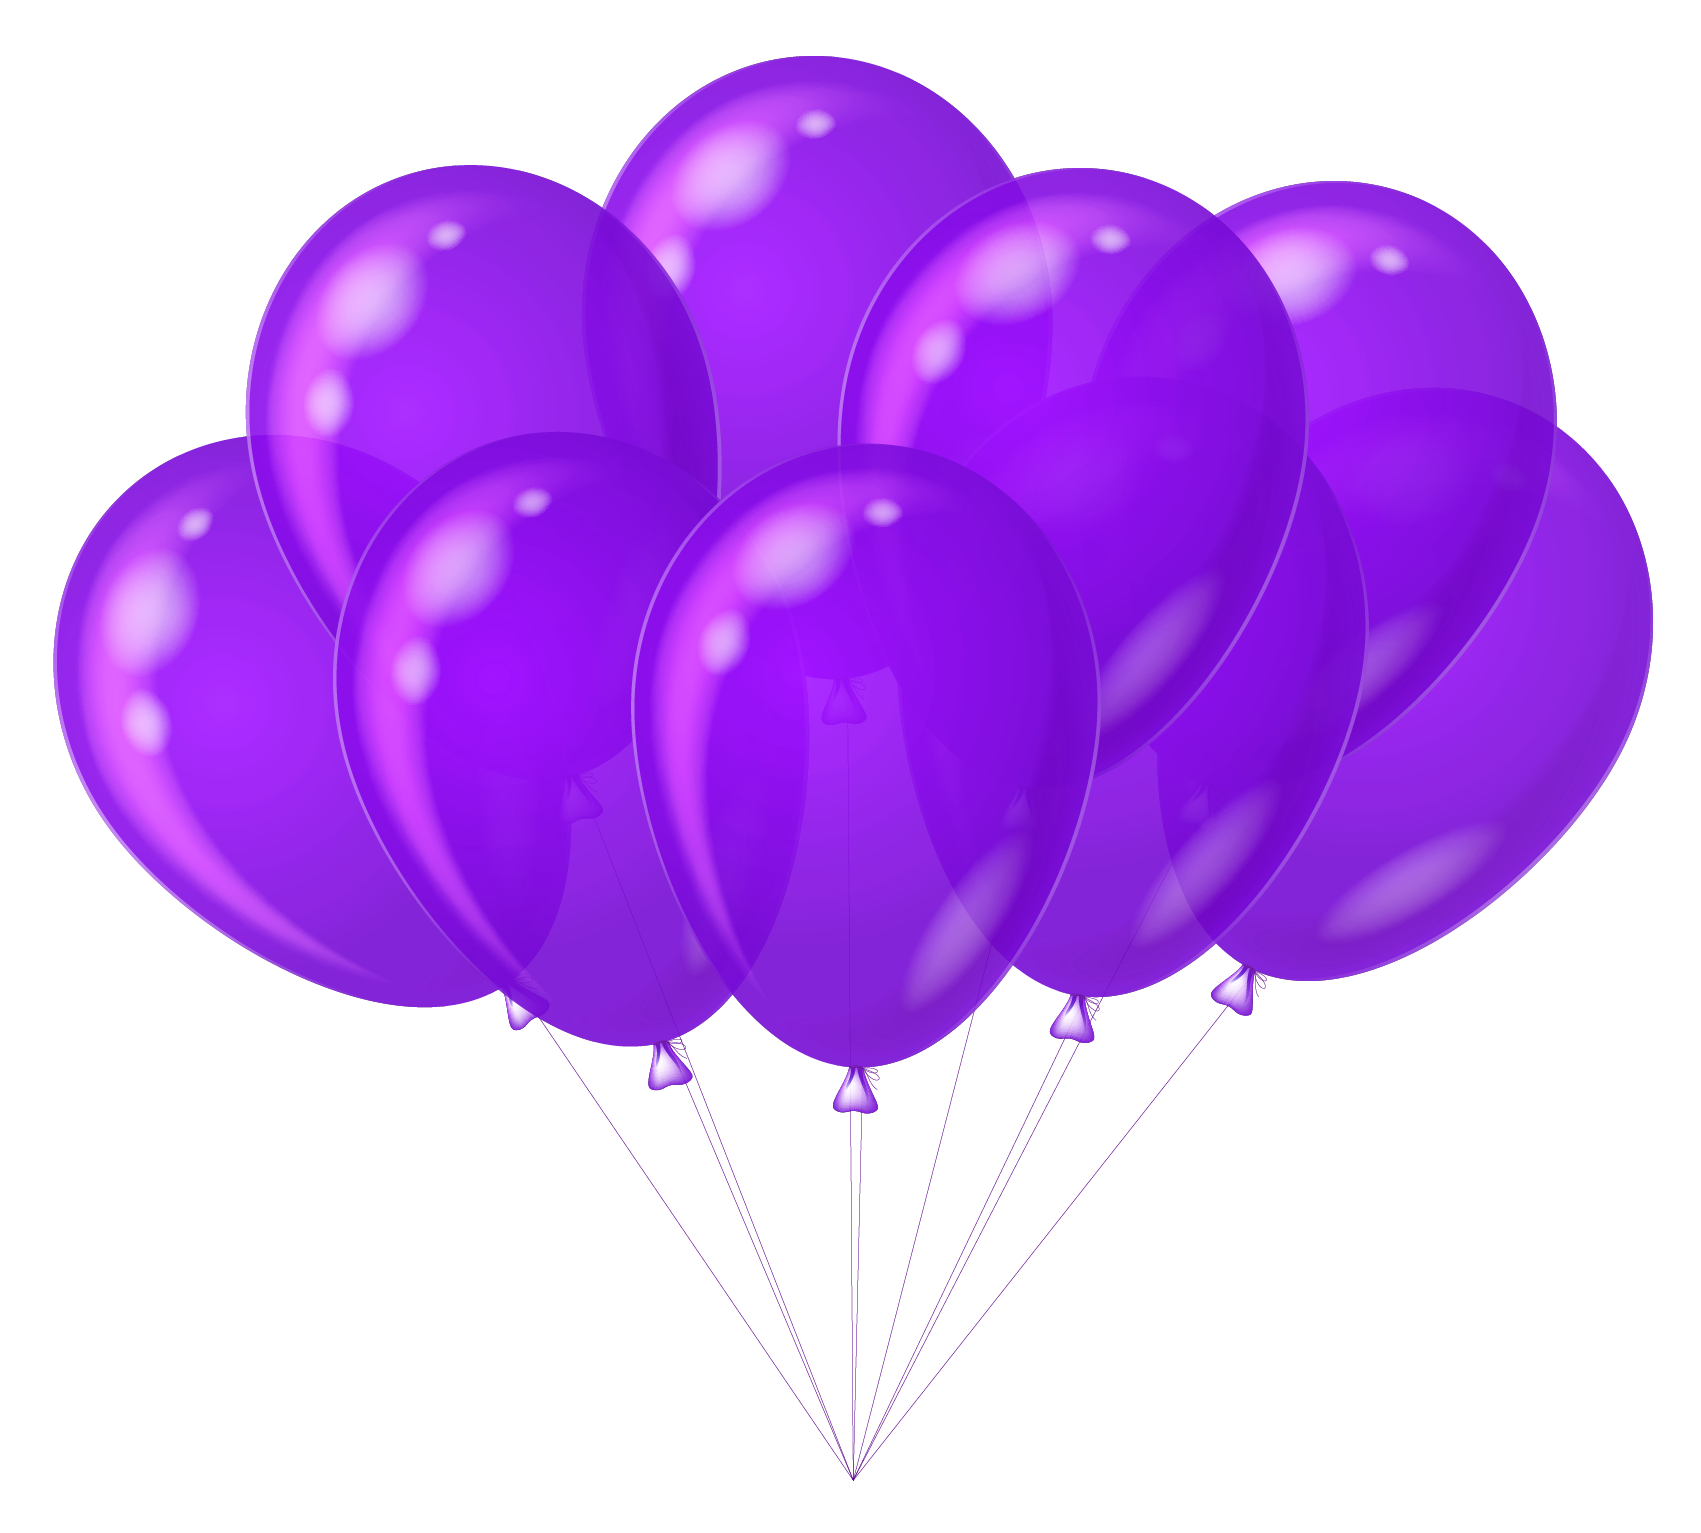 Purple balloons png. Transparent clipart gallery yopriceville